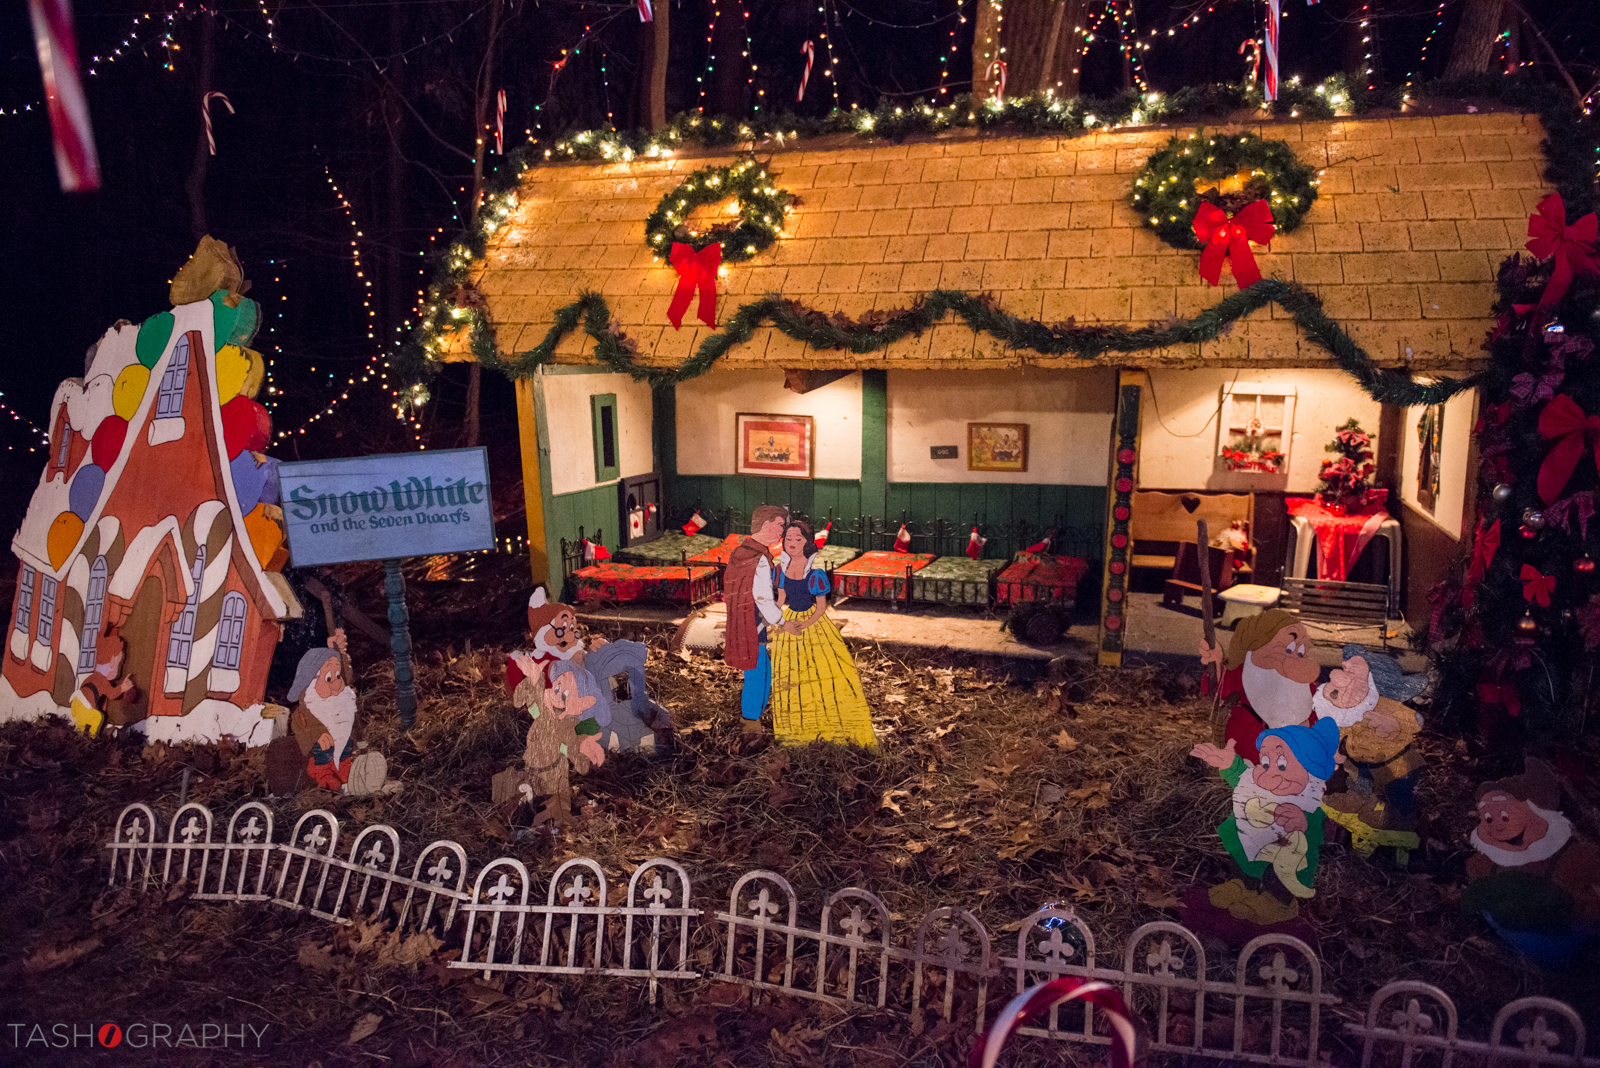 Here is oneof the hand-crafted houses in the village featuring Snow White and the Seven Dwarfs. Check out the little beds Mrs. Setti created using iron planters! All of the houses were built with recycled materials.